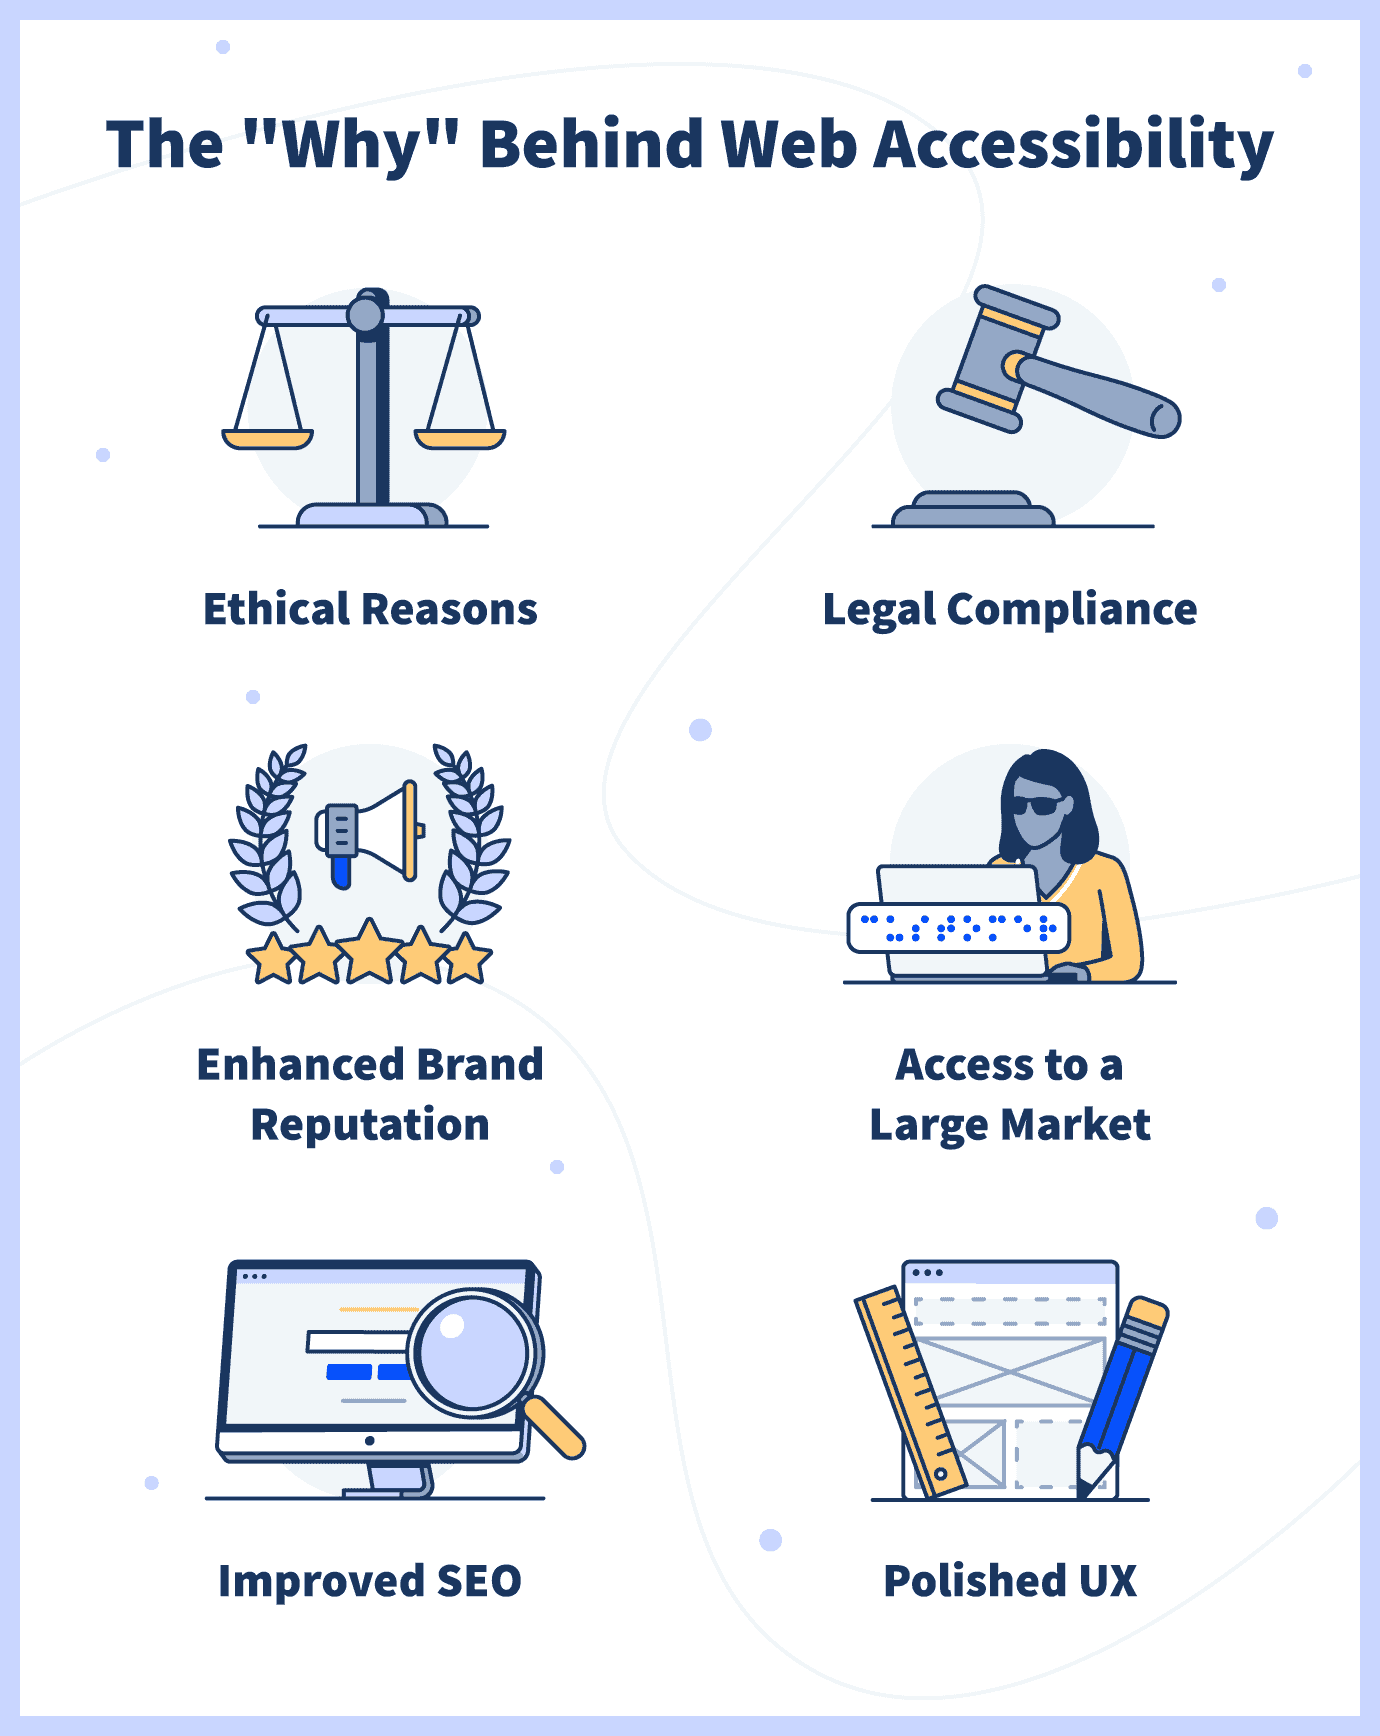 the why behind website accessibility: ethical reasons, legal compliance, enhanced brand reputation, access to a large market, improved SEO, polished UX